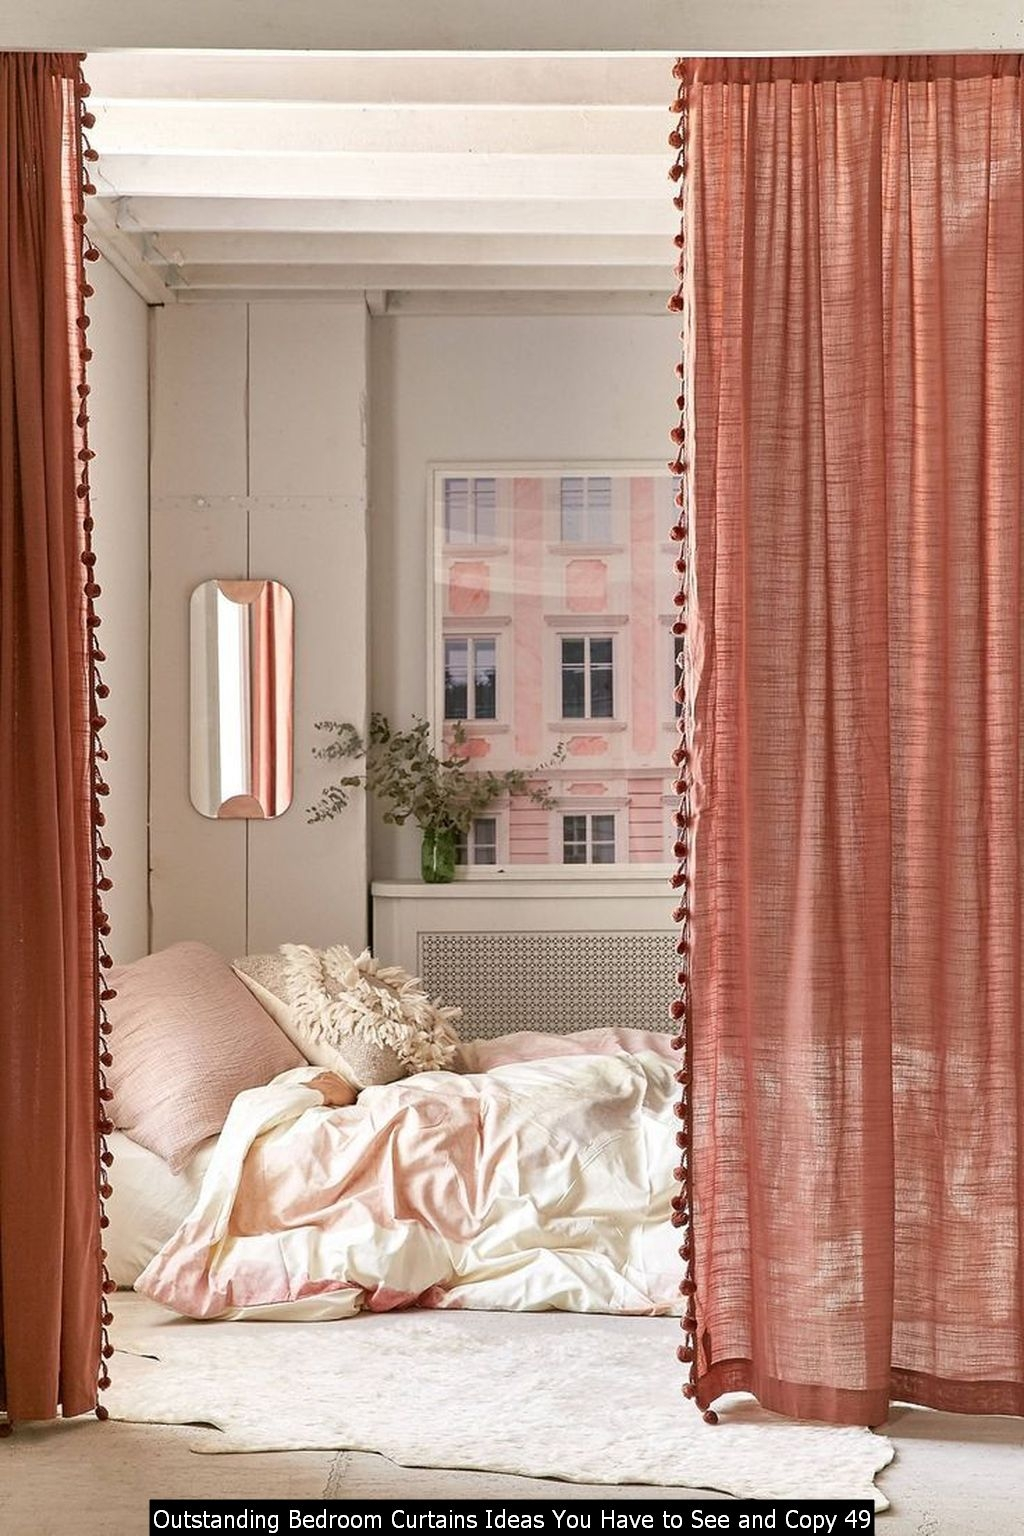 30 Outstanding Bedroom Curtains Ideas You Have To See And Copy Lovahomy